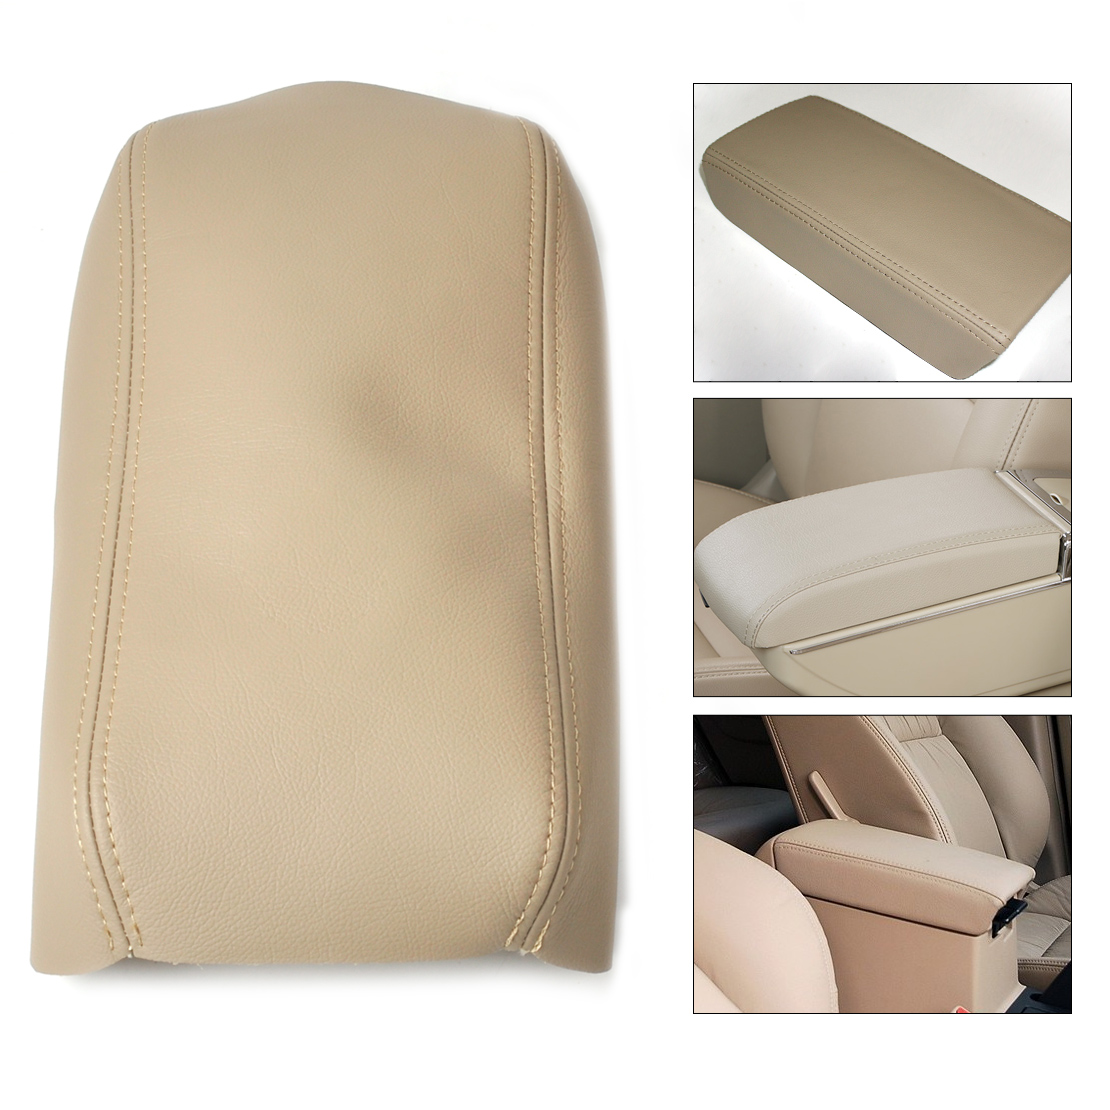 DWCX Car Auto Beige Leather Front Console Lid Armrest <font><b>Cover</b></font> Decoration for <font><b>Honda</b></font> <font><b>Accord</b></font> 2003 2004 2005 2006 <font><b>2007</b></font> DIY image